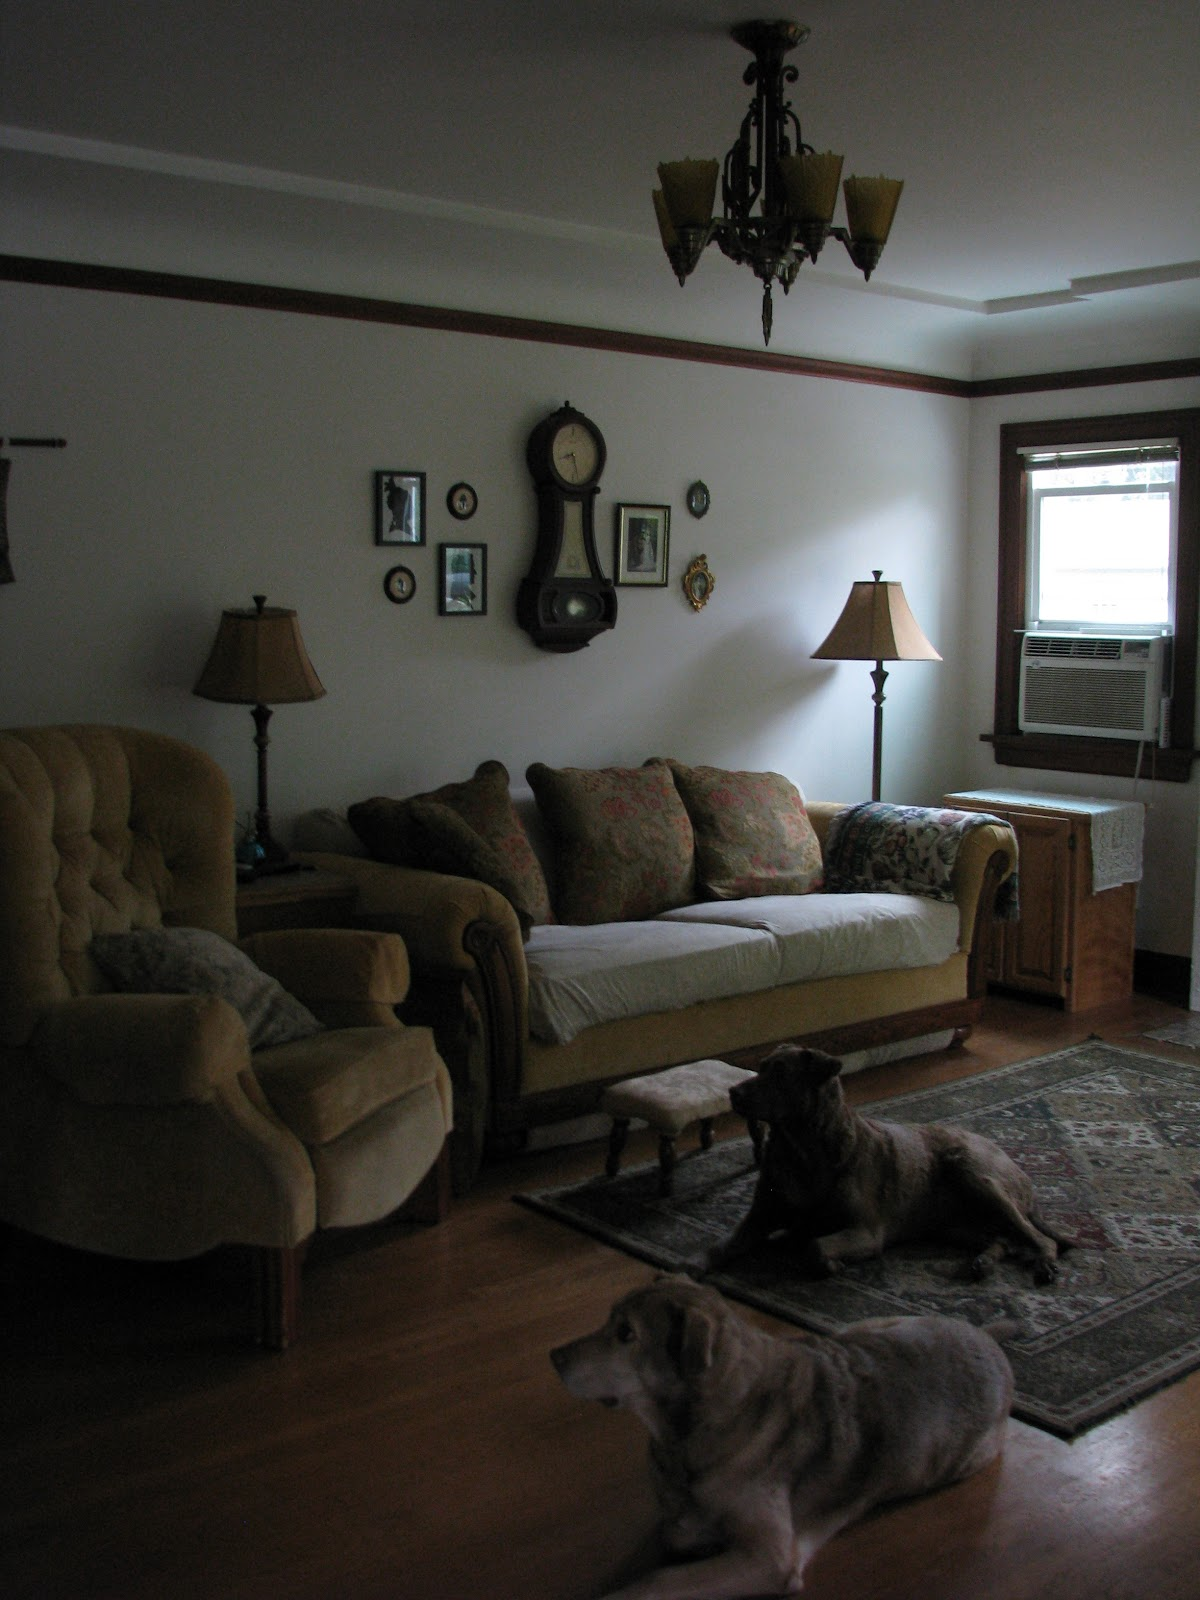 [House Pictures 7.31.10 007[4].jpg]